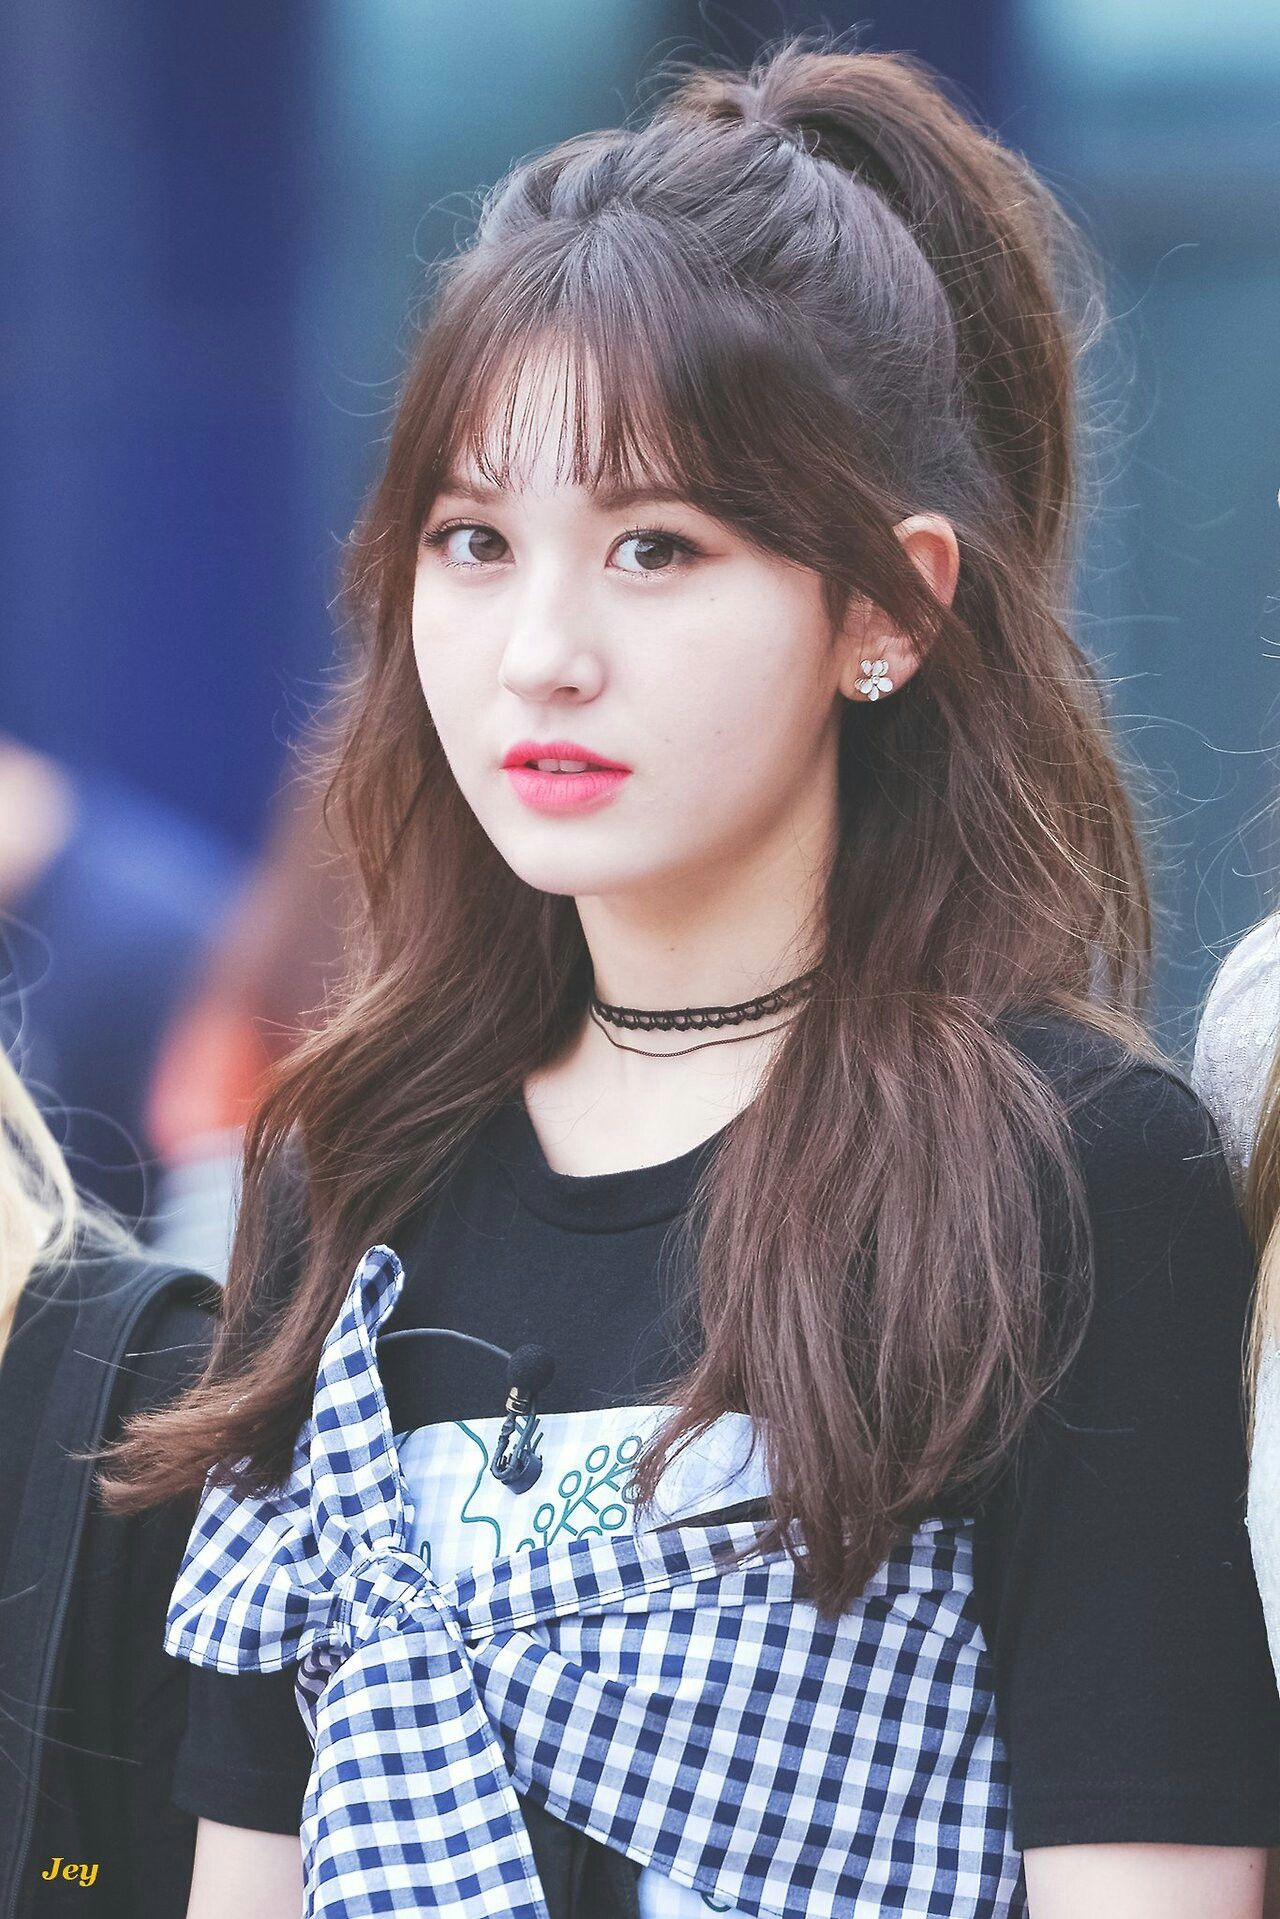 pin by im nayeon on somi | jeon somi, korean bangs, somi